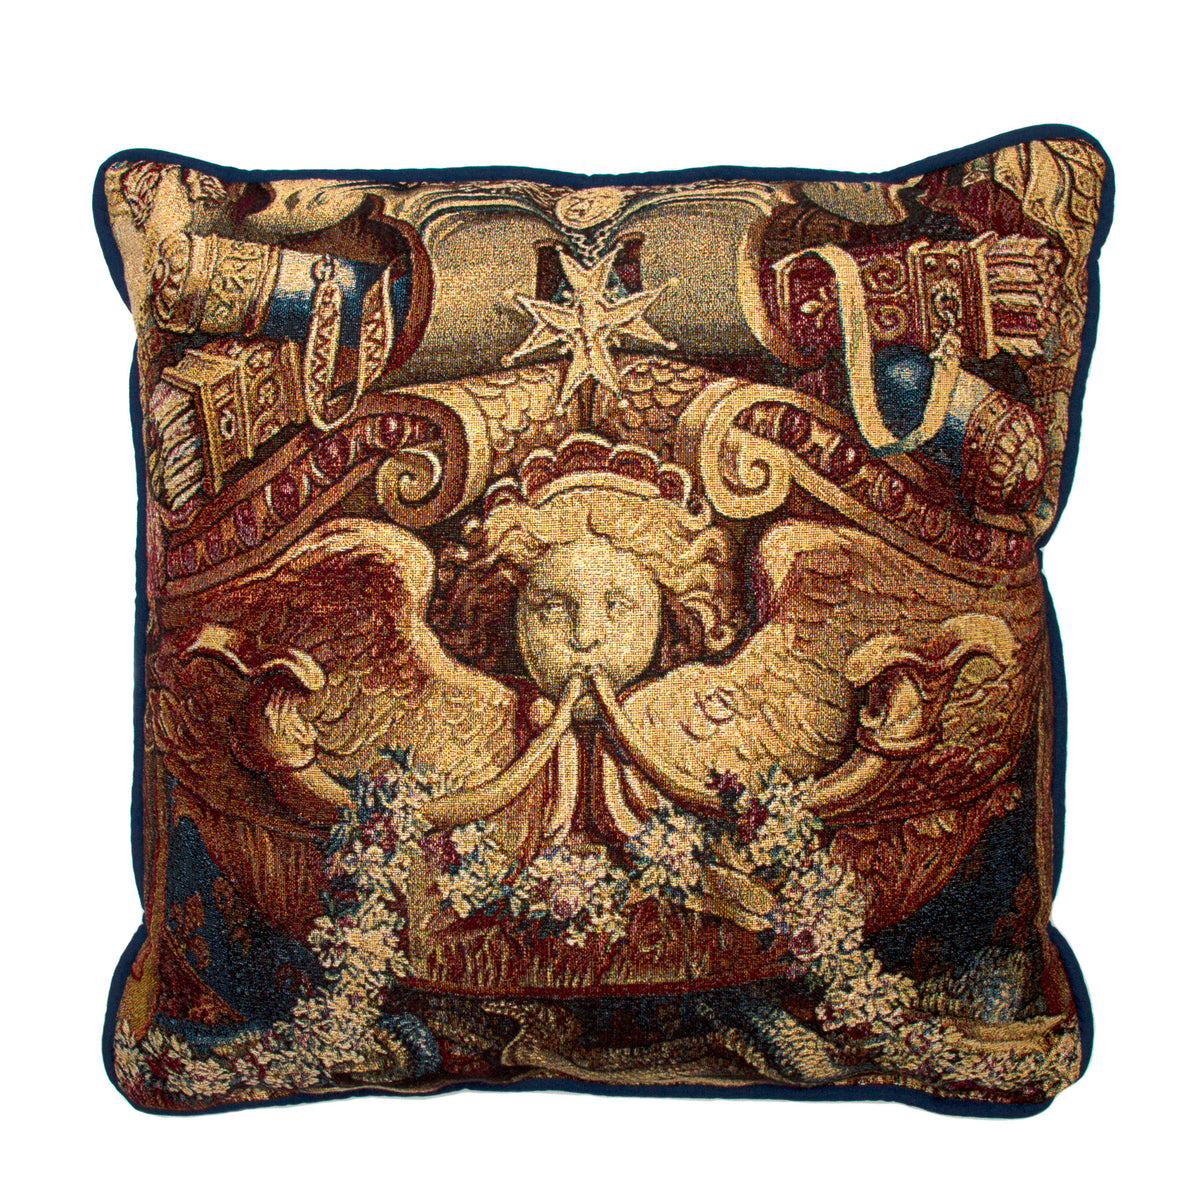 Portiere of the Chariot of Triumph-Tapestry Pillow  | Getty Store